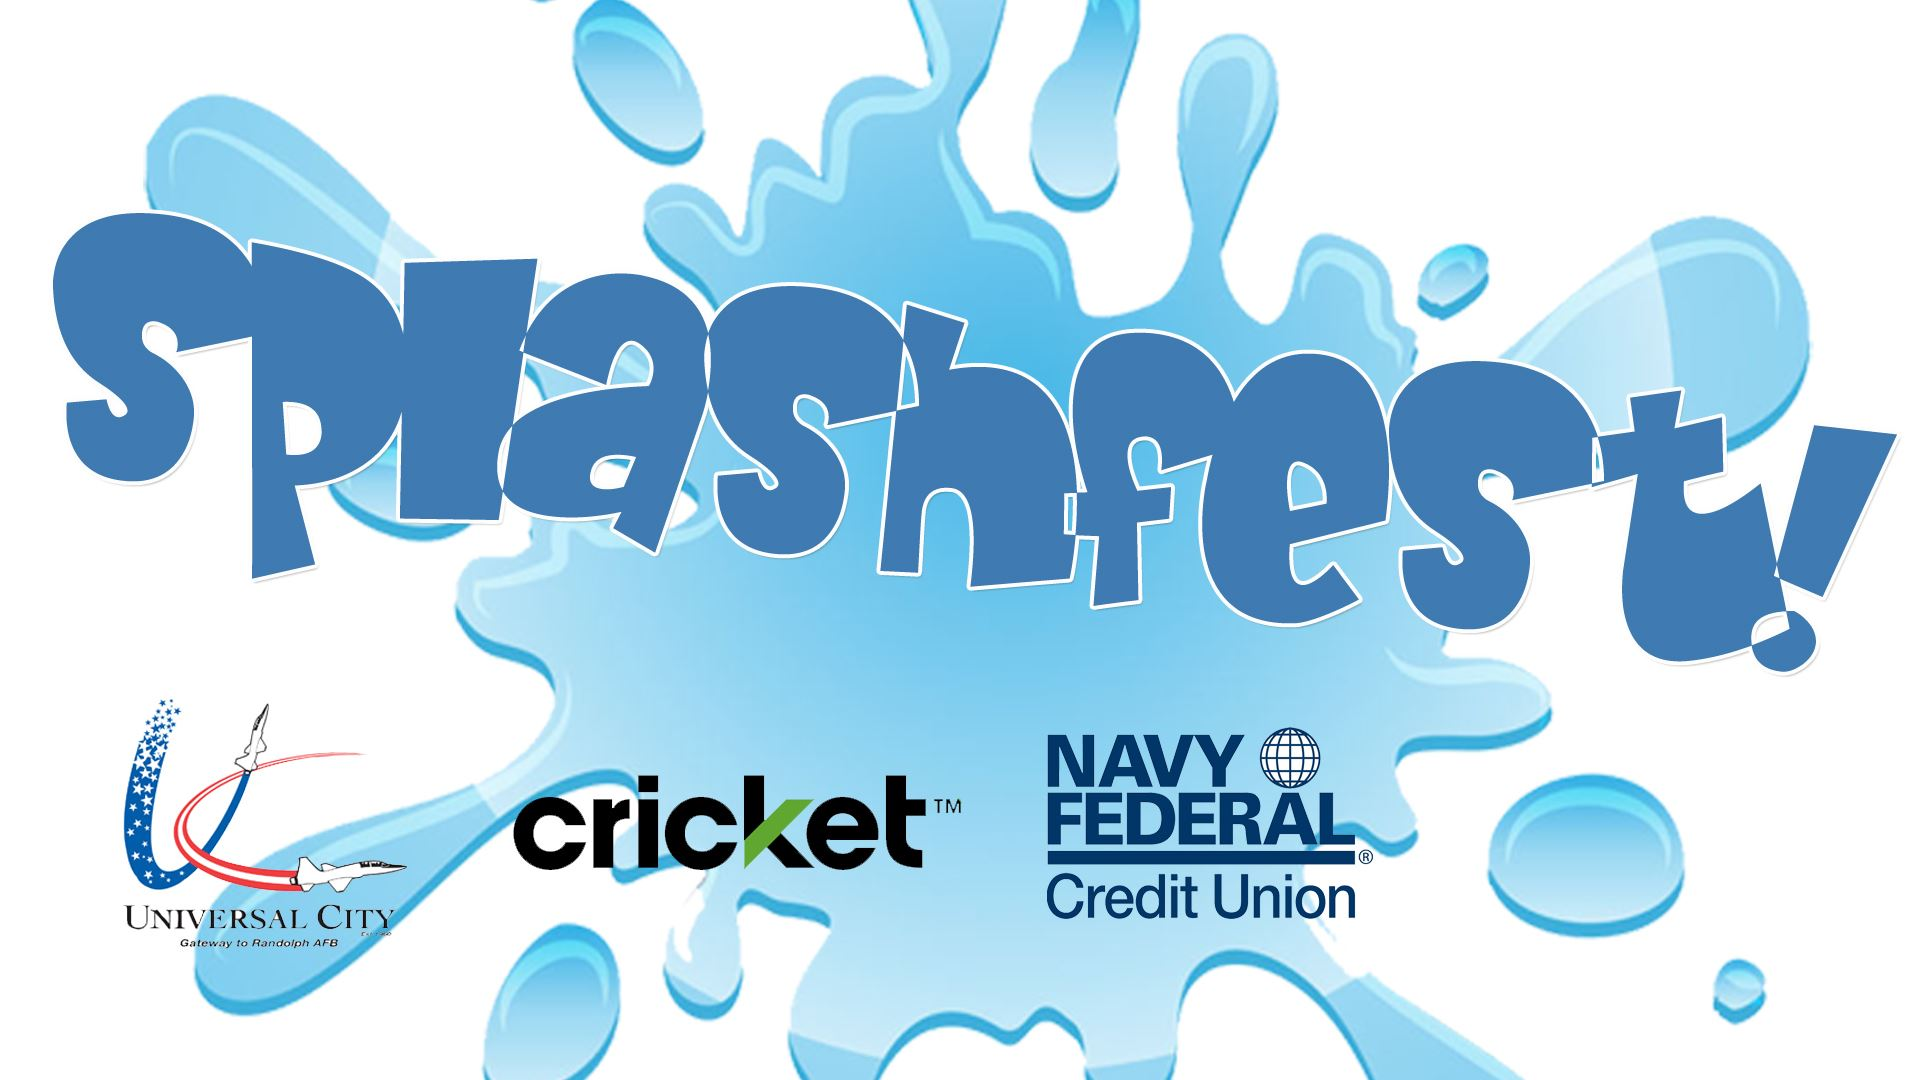 SPLASHFEST event header